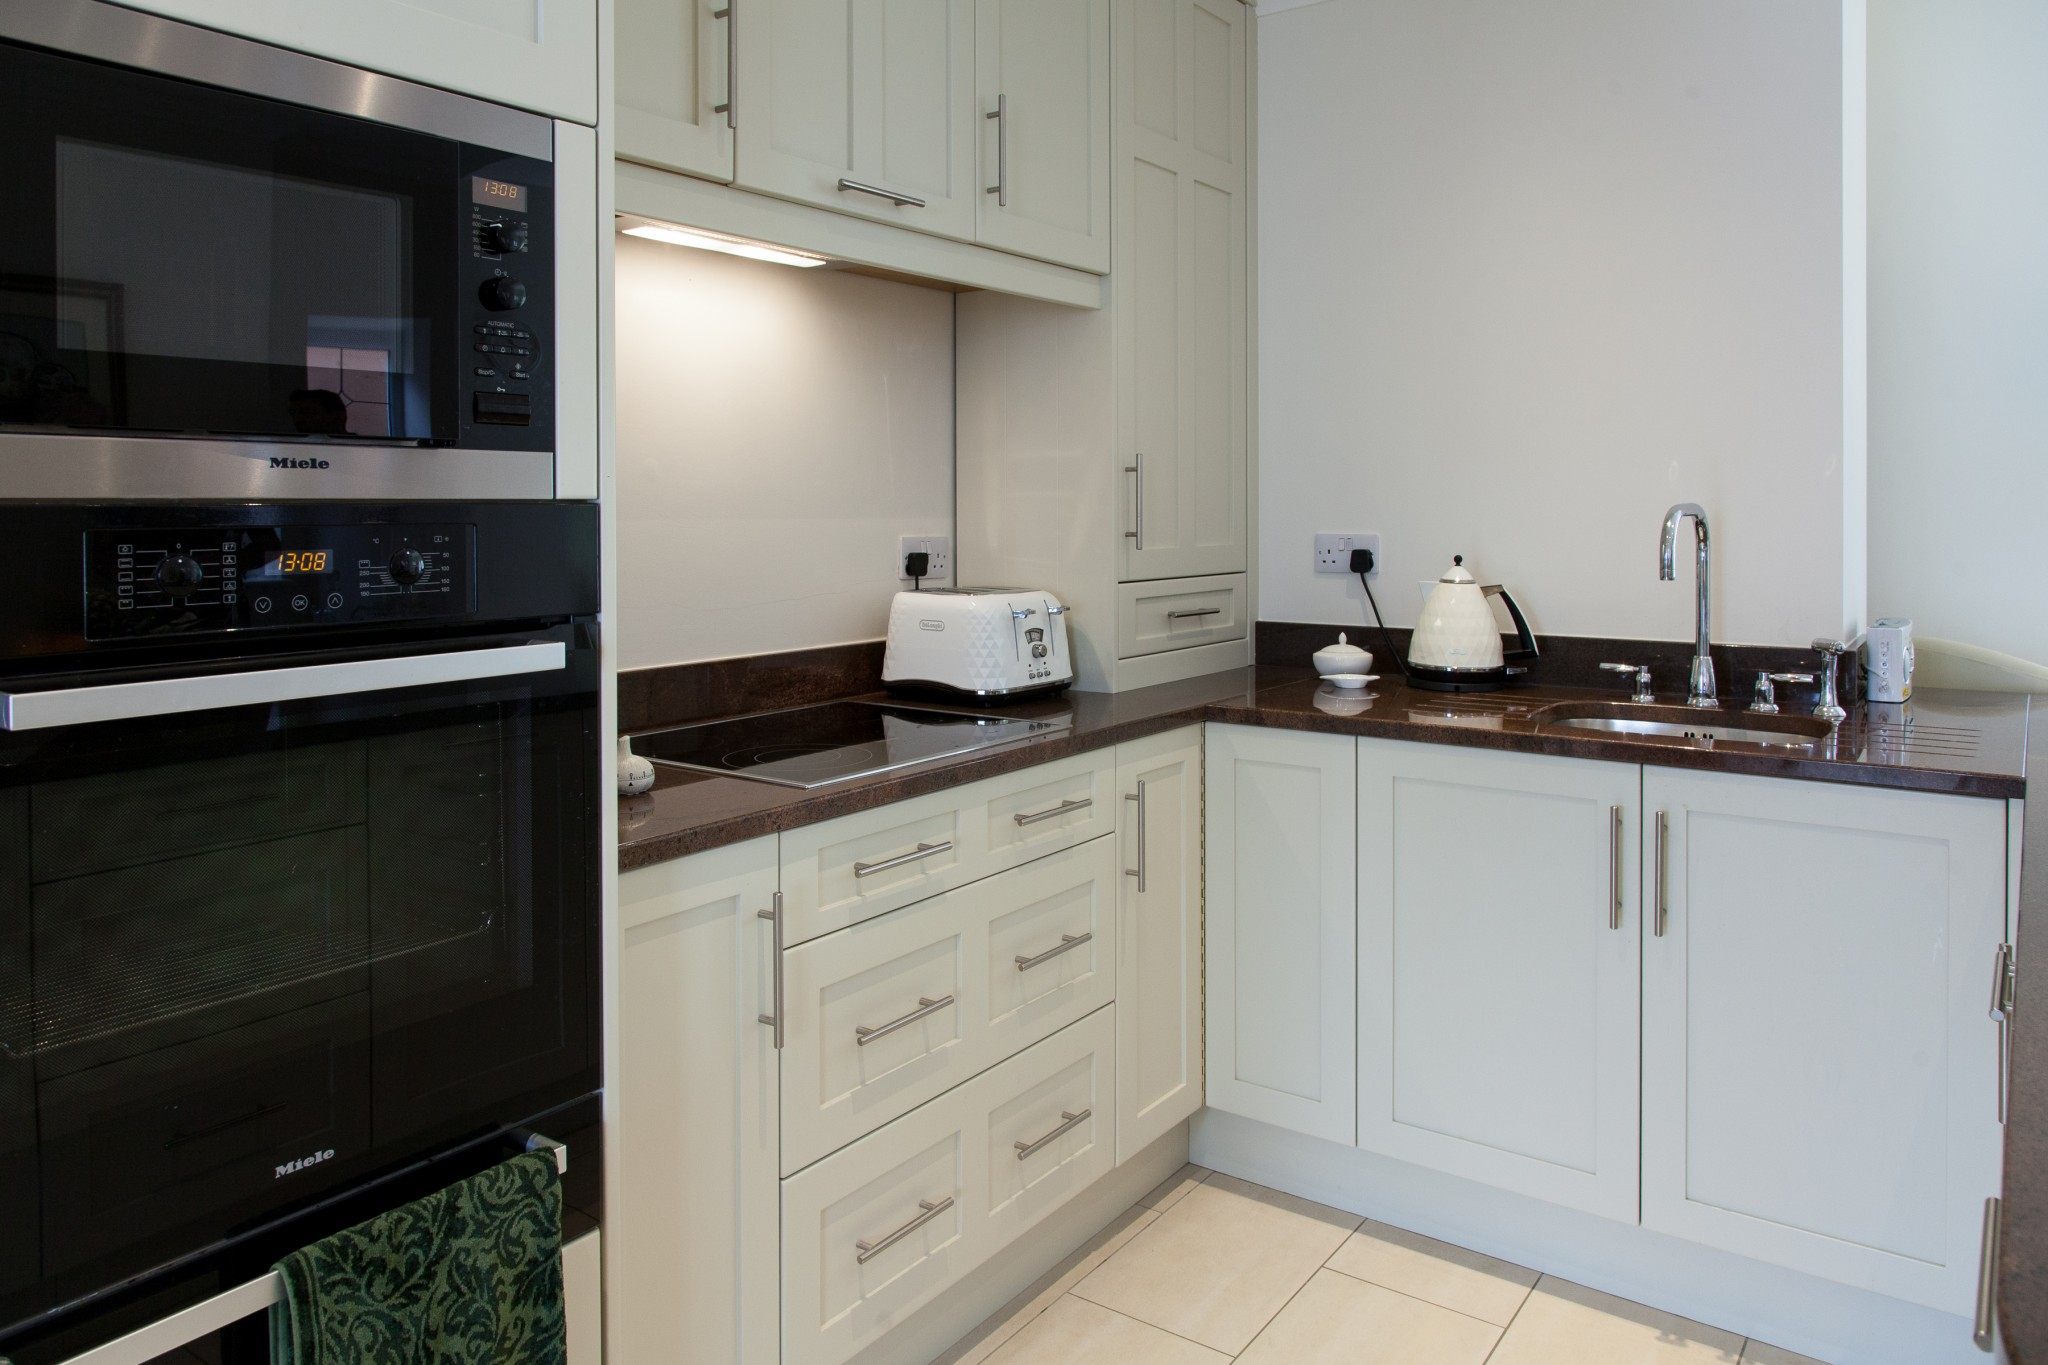 Painted Kitchen Mumbles Gower. Painted Kitchen Mumbles Gower   Mark Stone s Welsh Kitchens